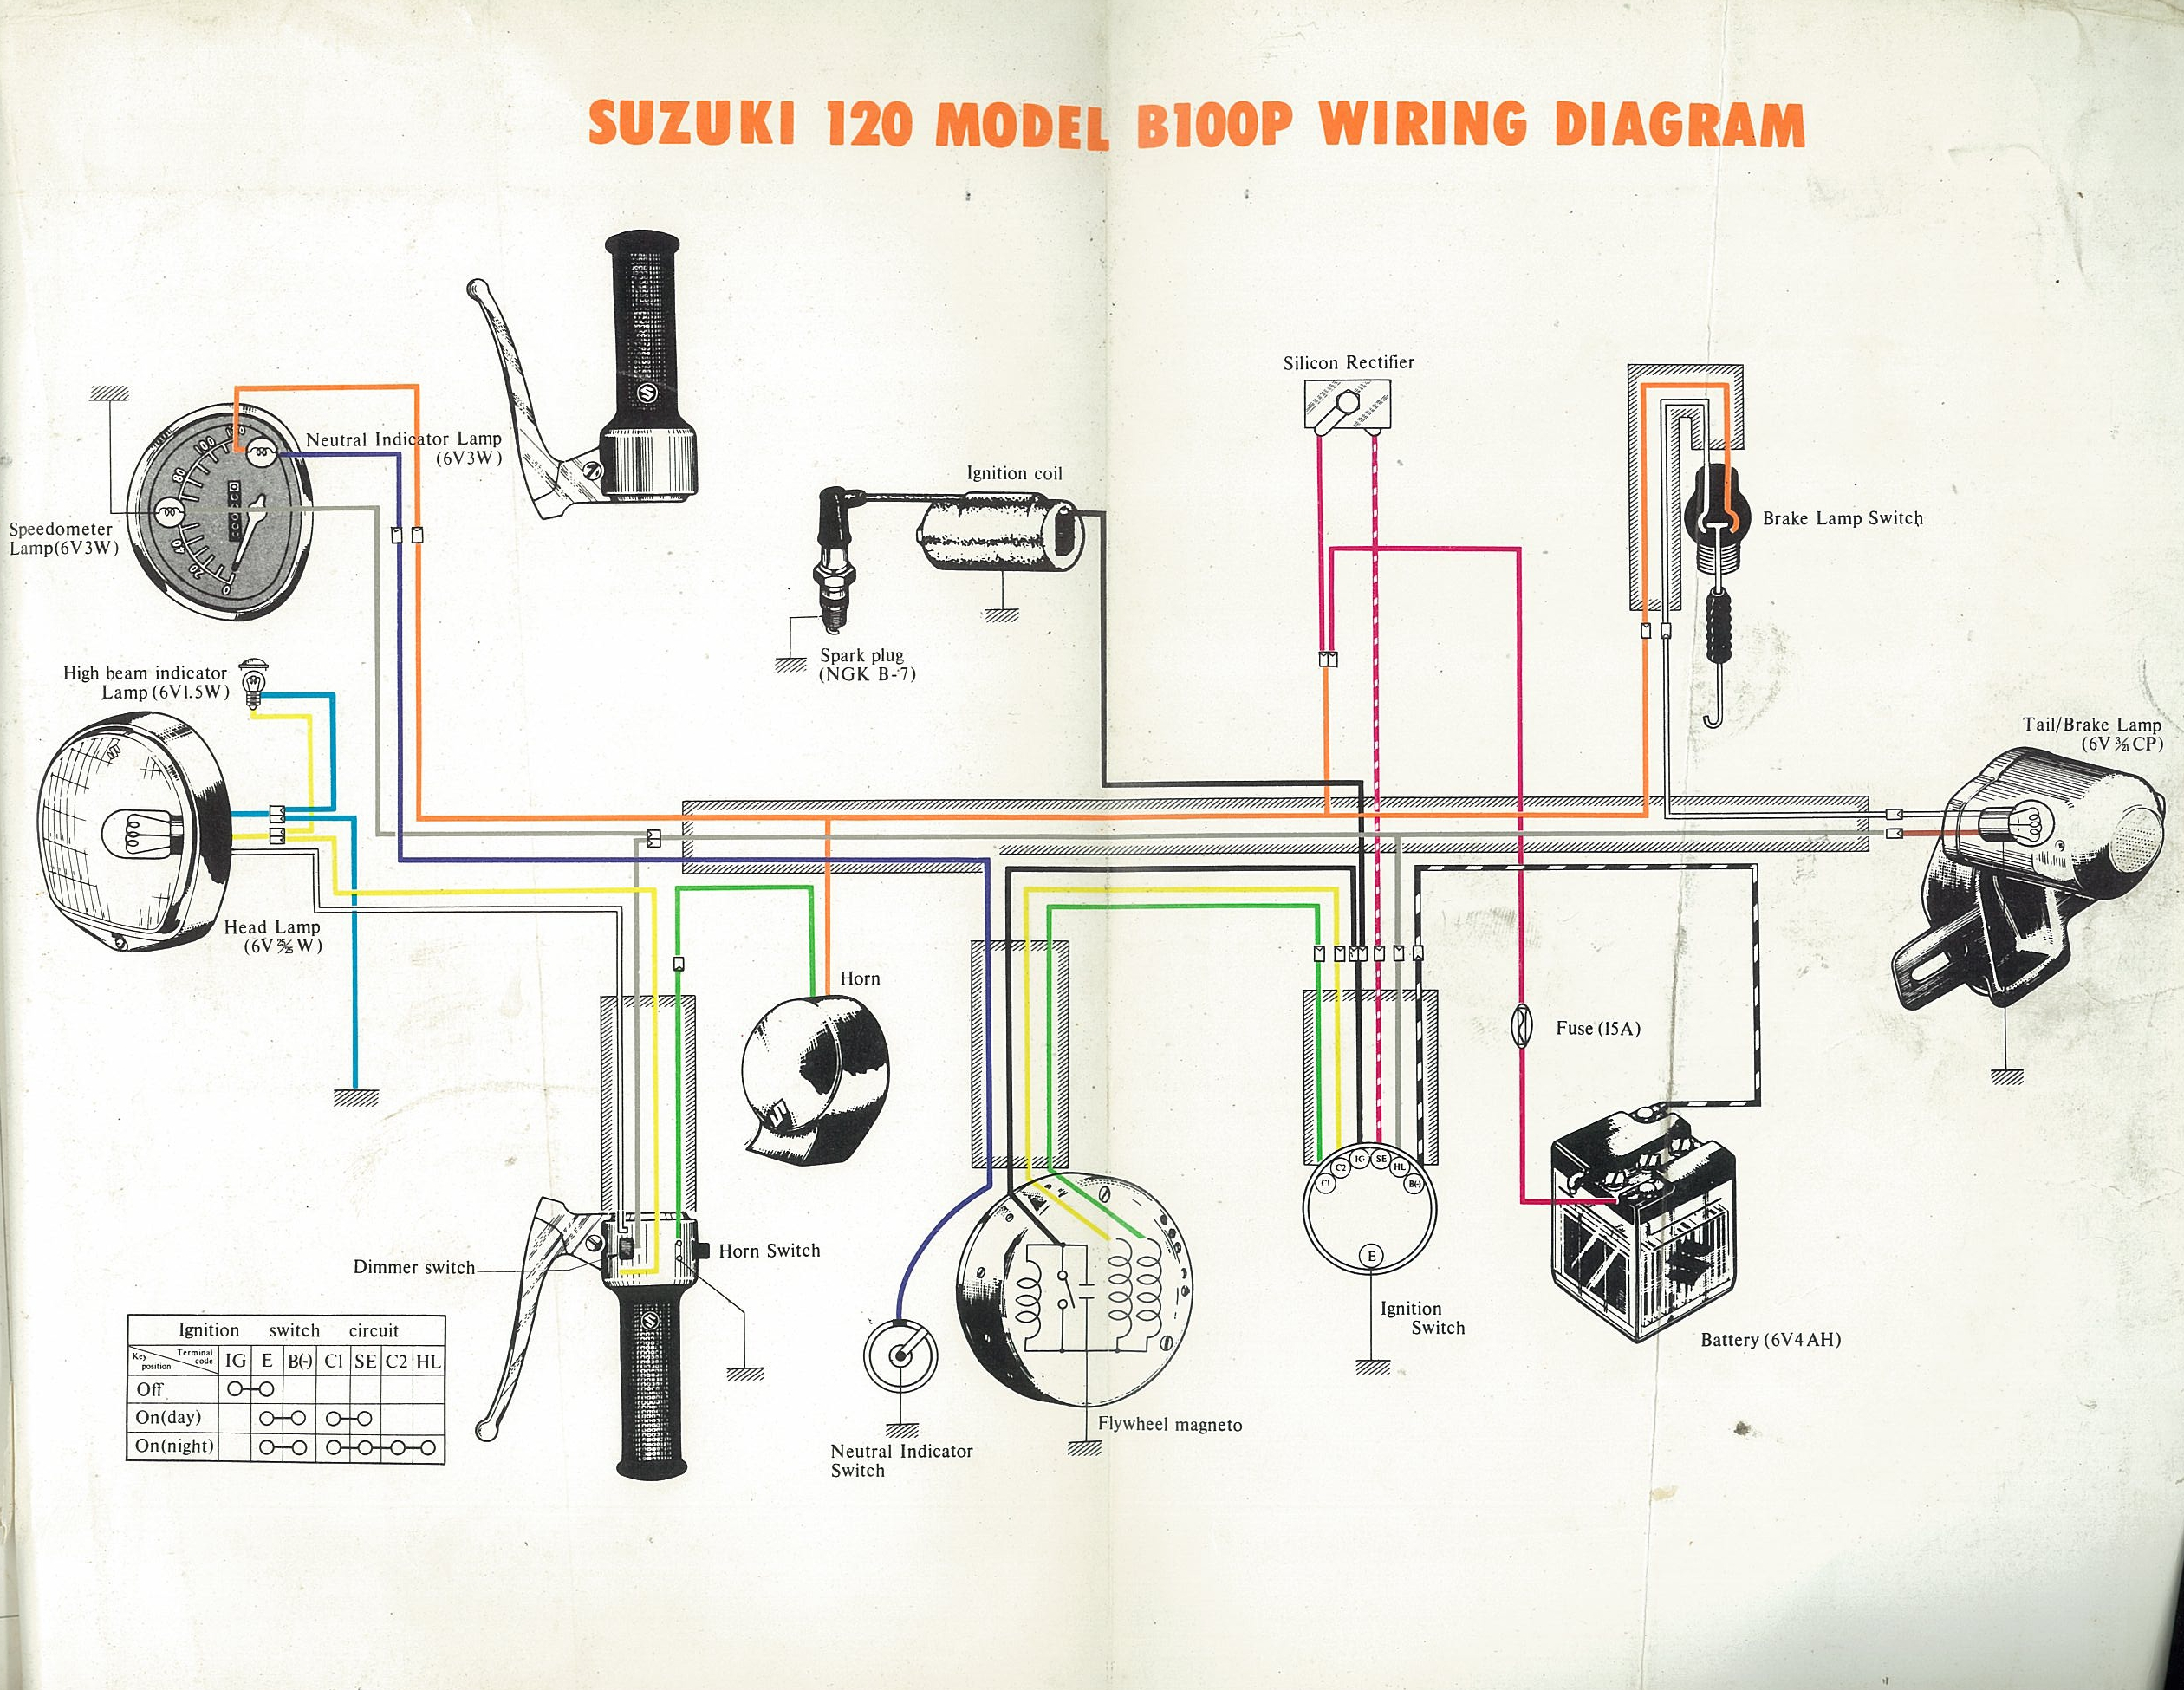 b100p wiring sundial moto sports \u2022 view topic bypassing the ignition key for honda wave 125 electrical wiring diagram at fashall.co